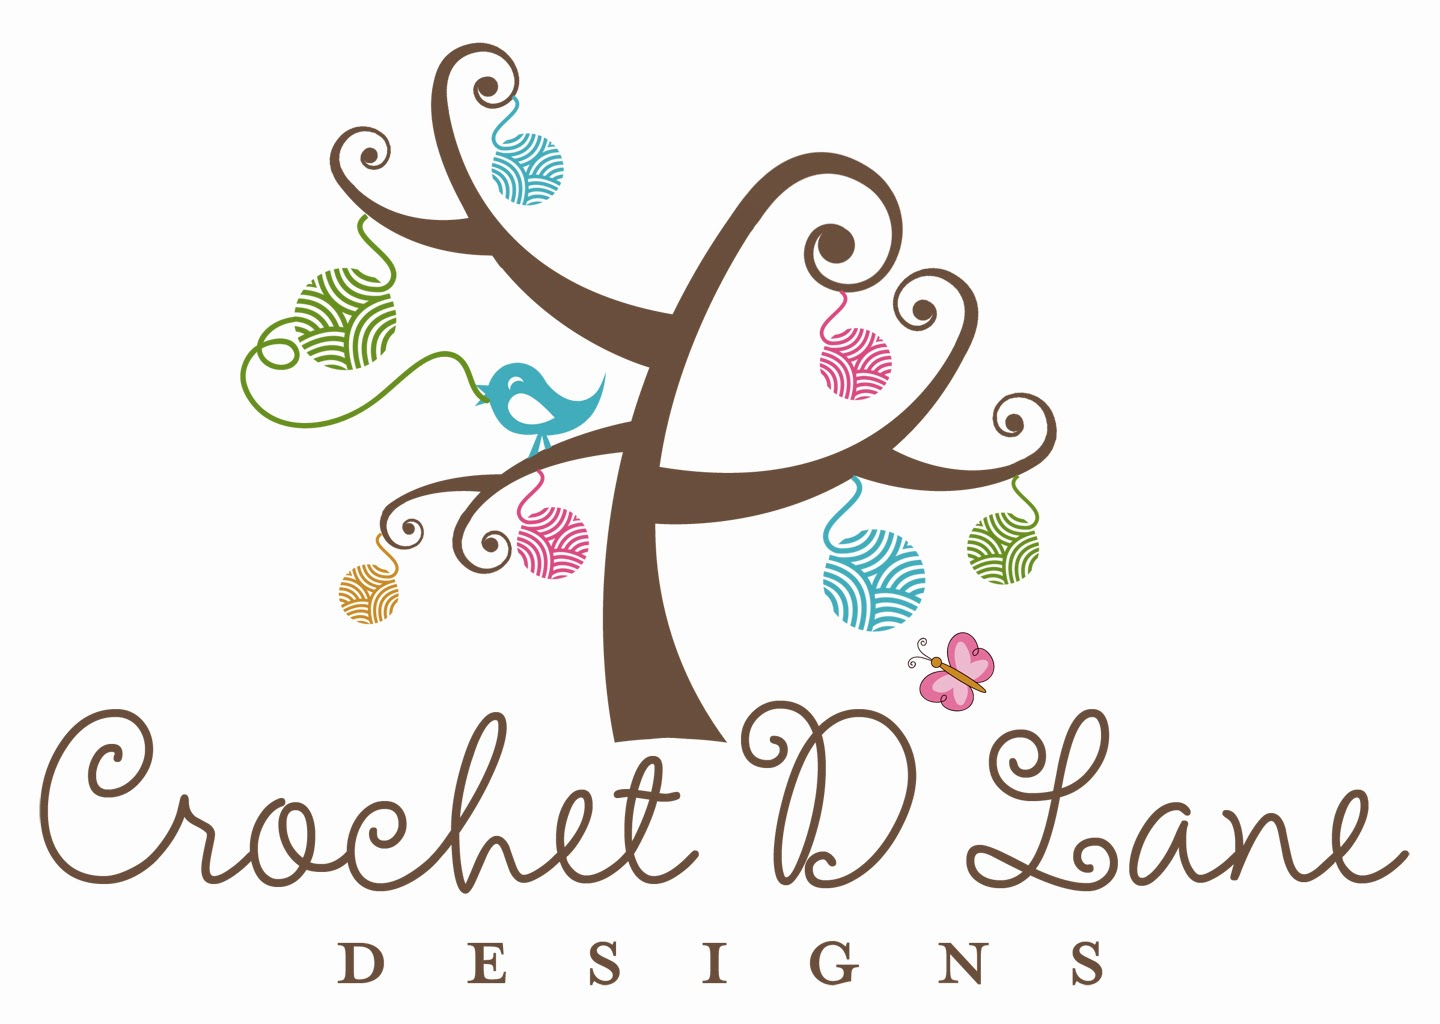 Crochet Logo crochet d lane: new logo